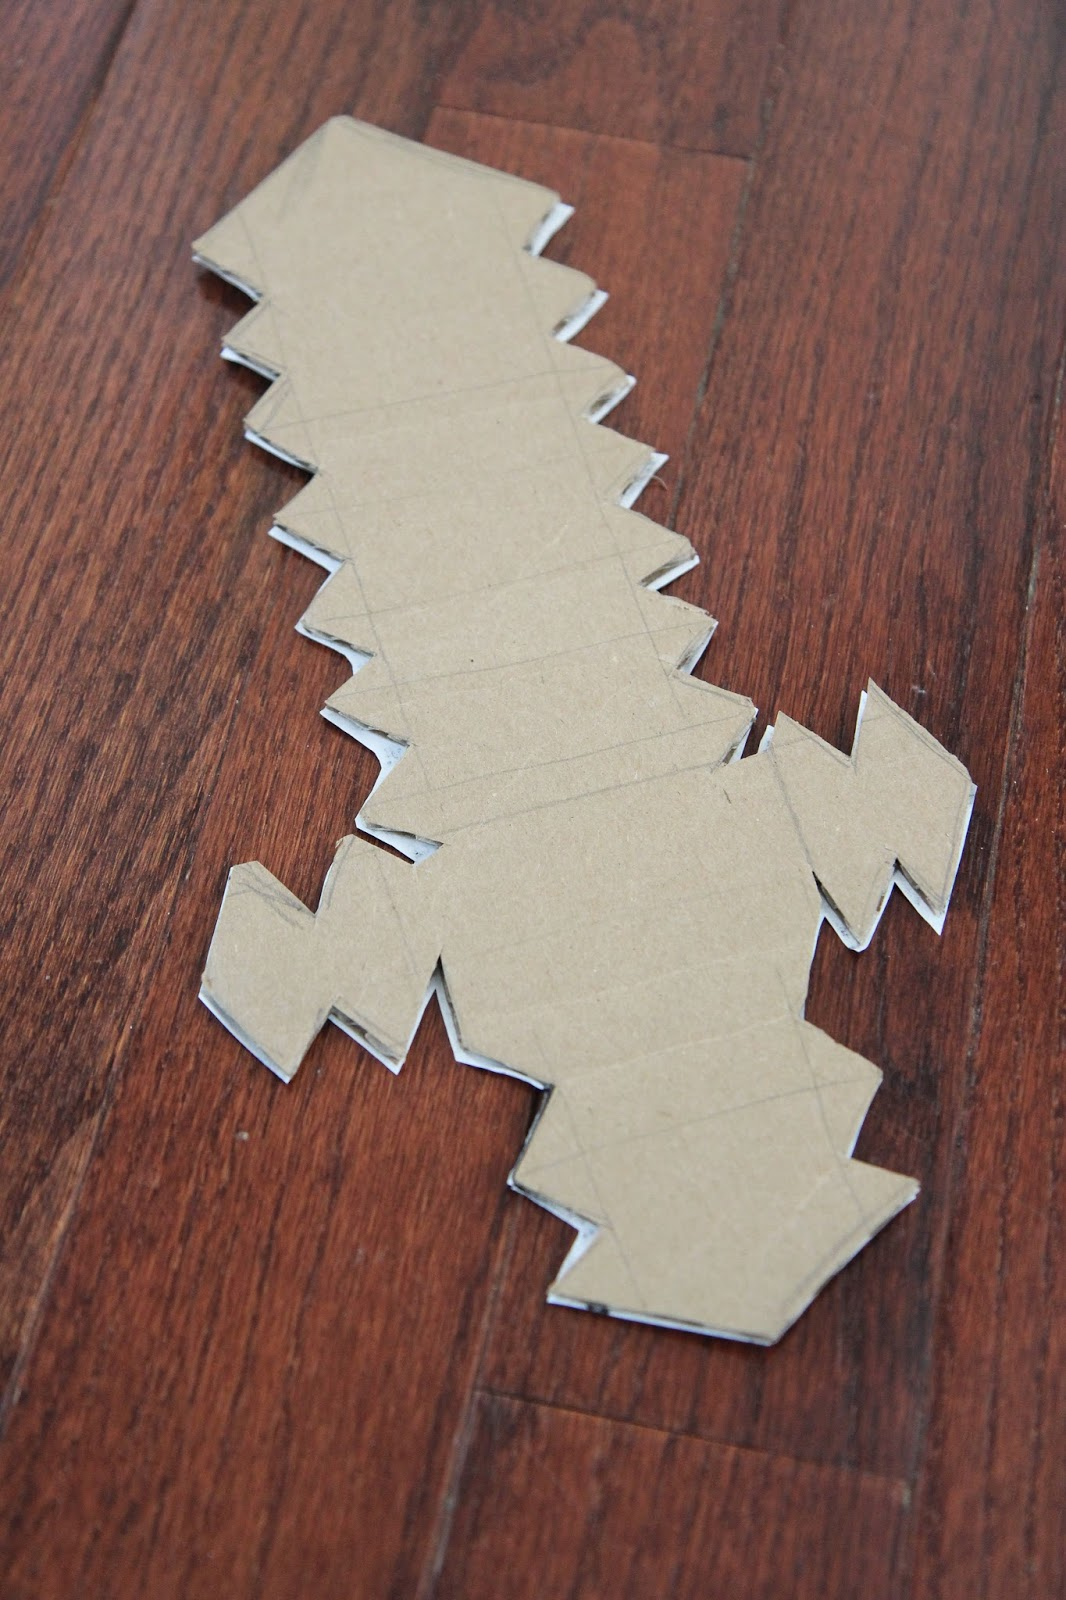 Toddler Approved Diy Cardboard Minecraft Sword Free Printable Origami Diagrams This Is The We Make In Download Template Here